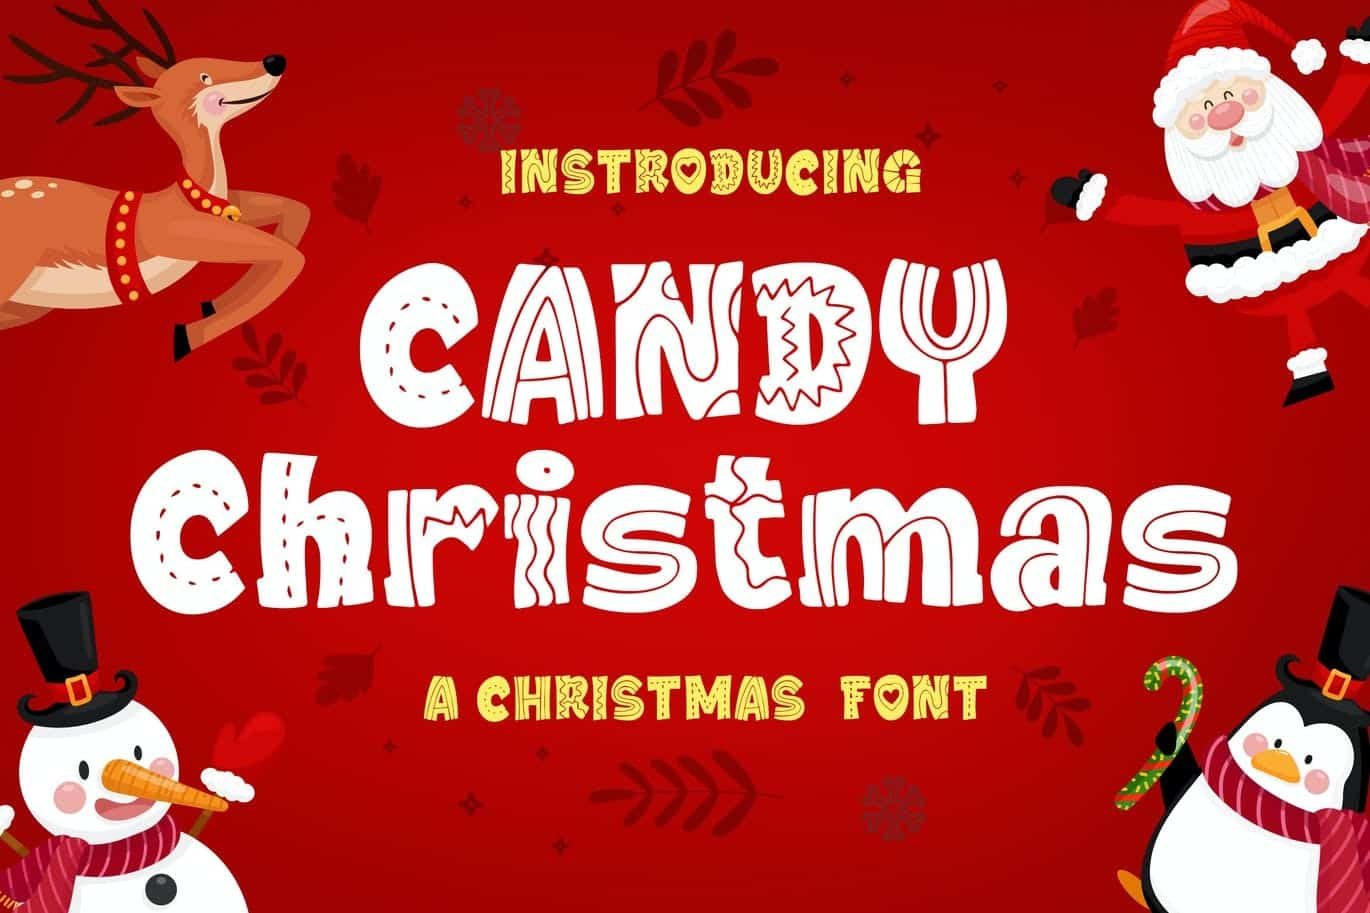 Christmas Fonts for Designers